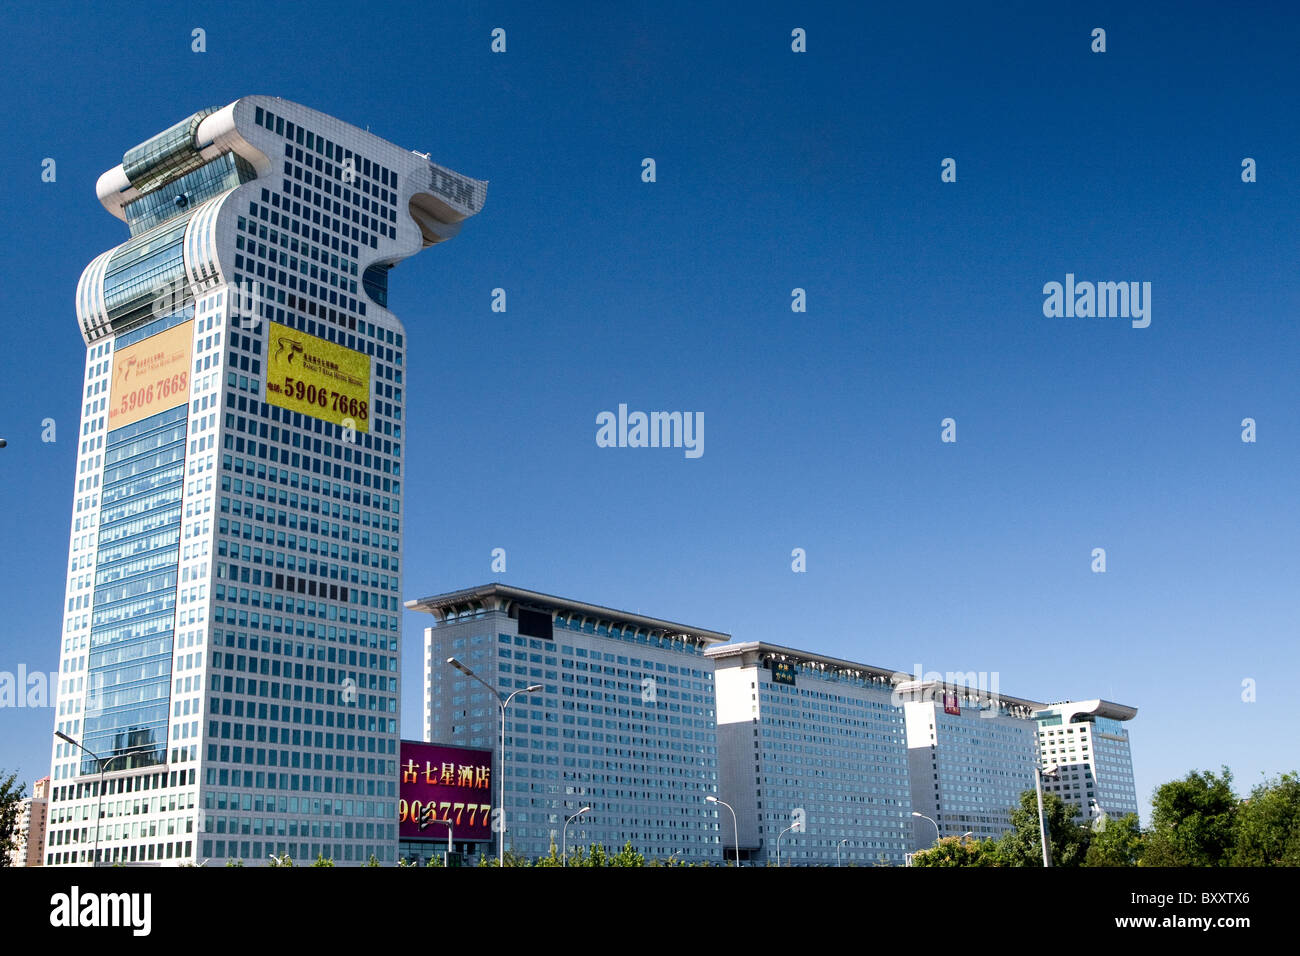 Olympic Village Beijing China Dragon complex - IBM + hotel - Stock Image